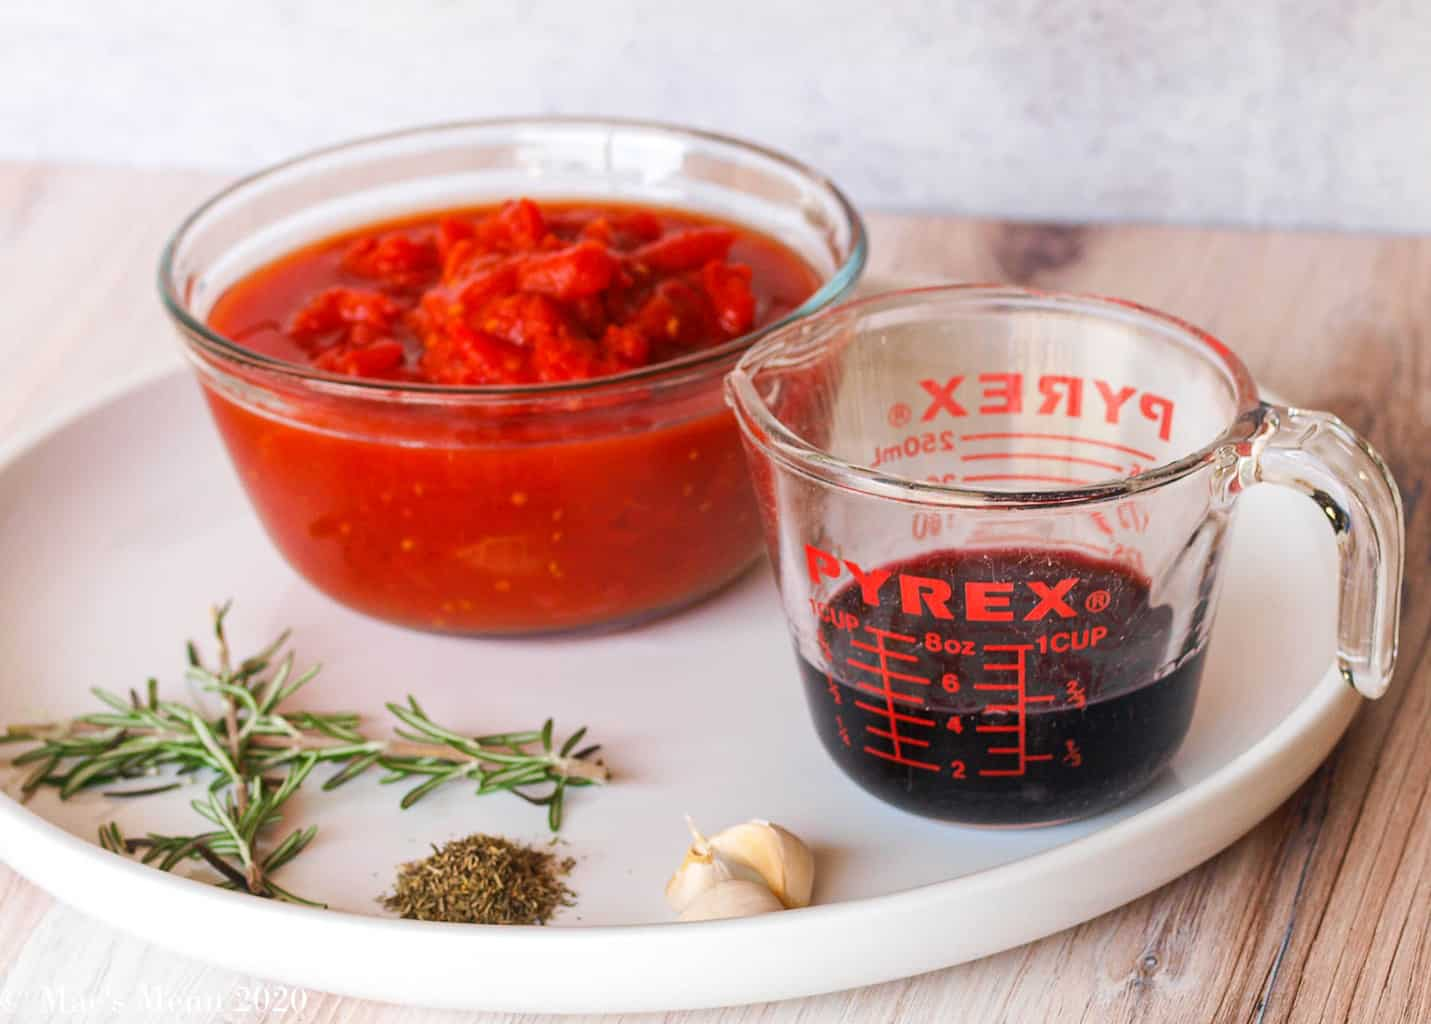 Canned tomatoes, red wine, and herbs for the pressure cooker beef ragu